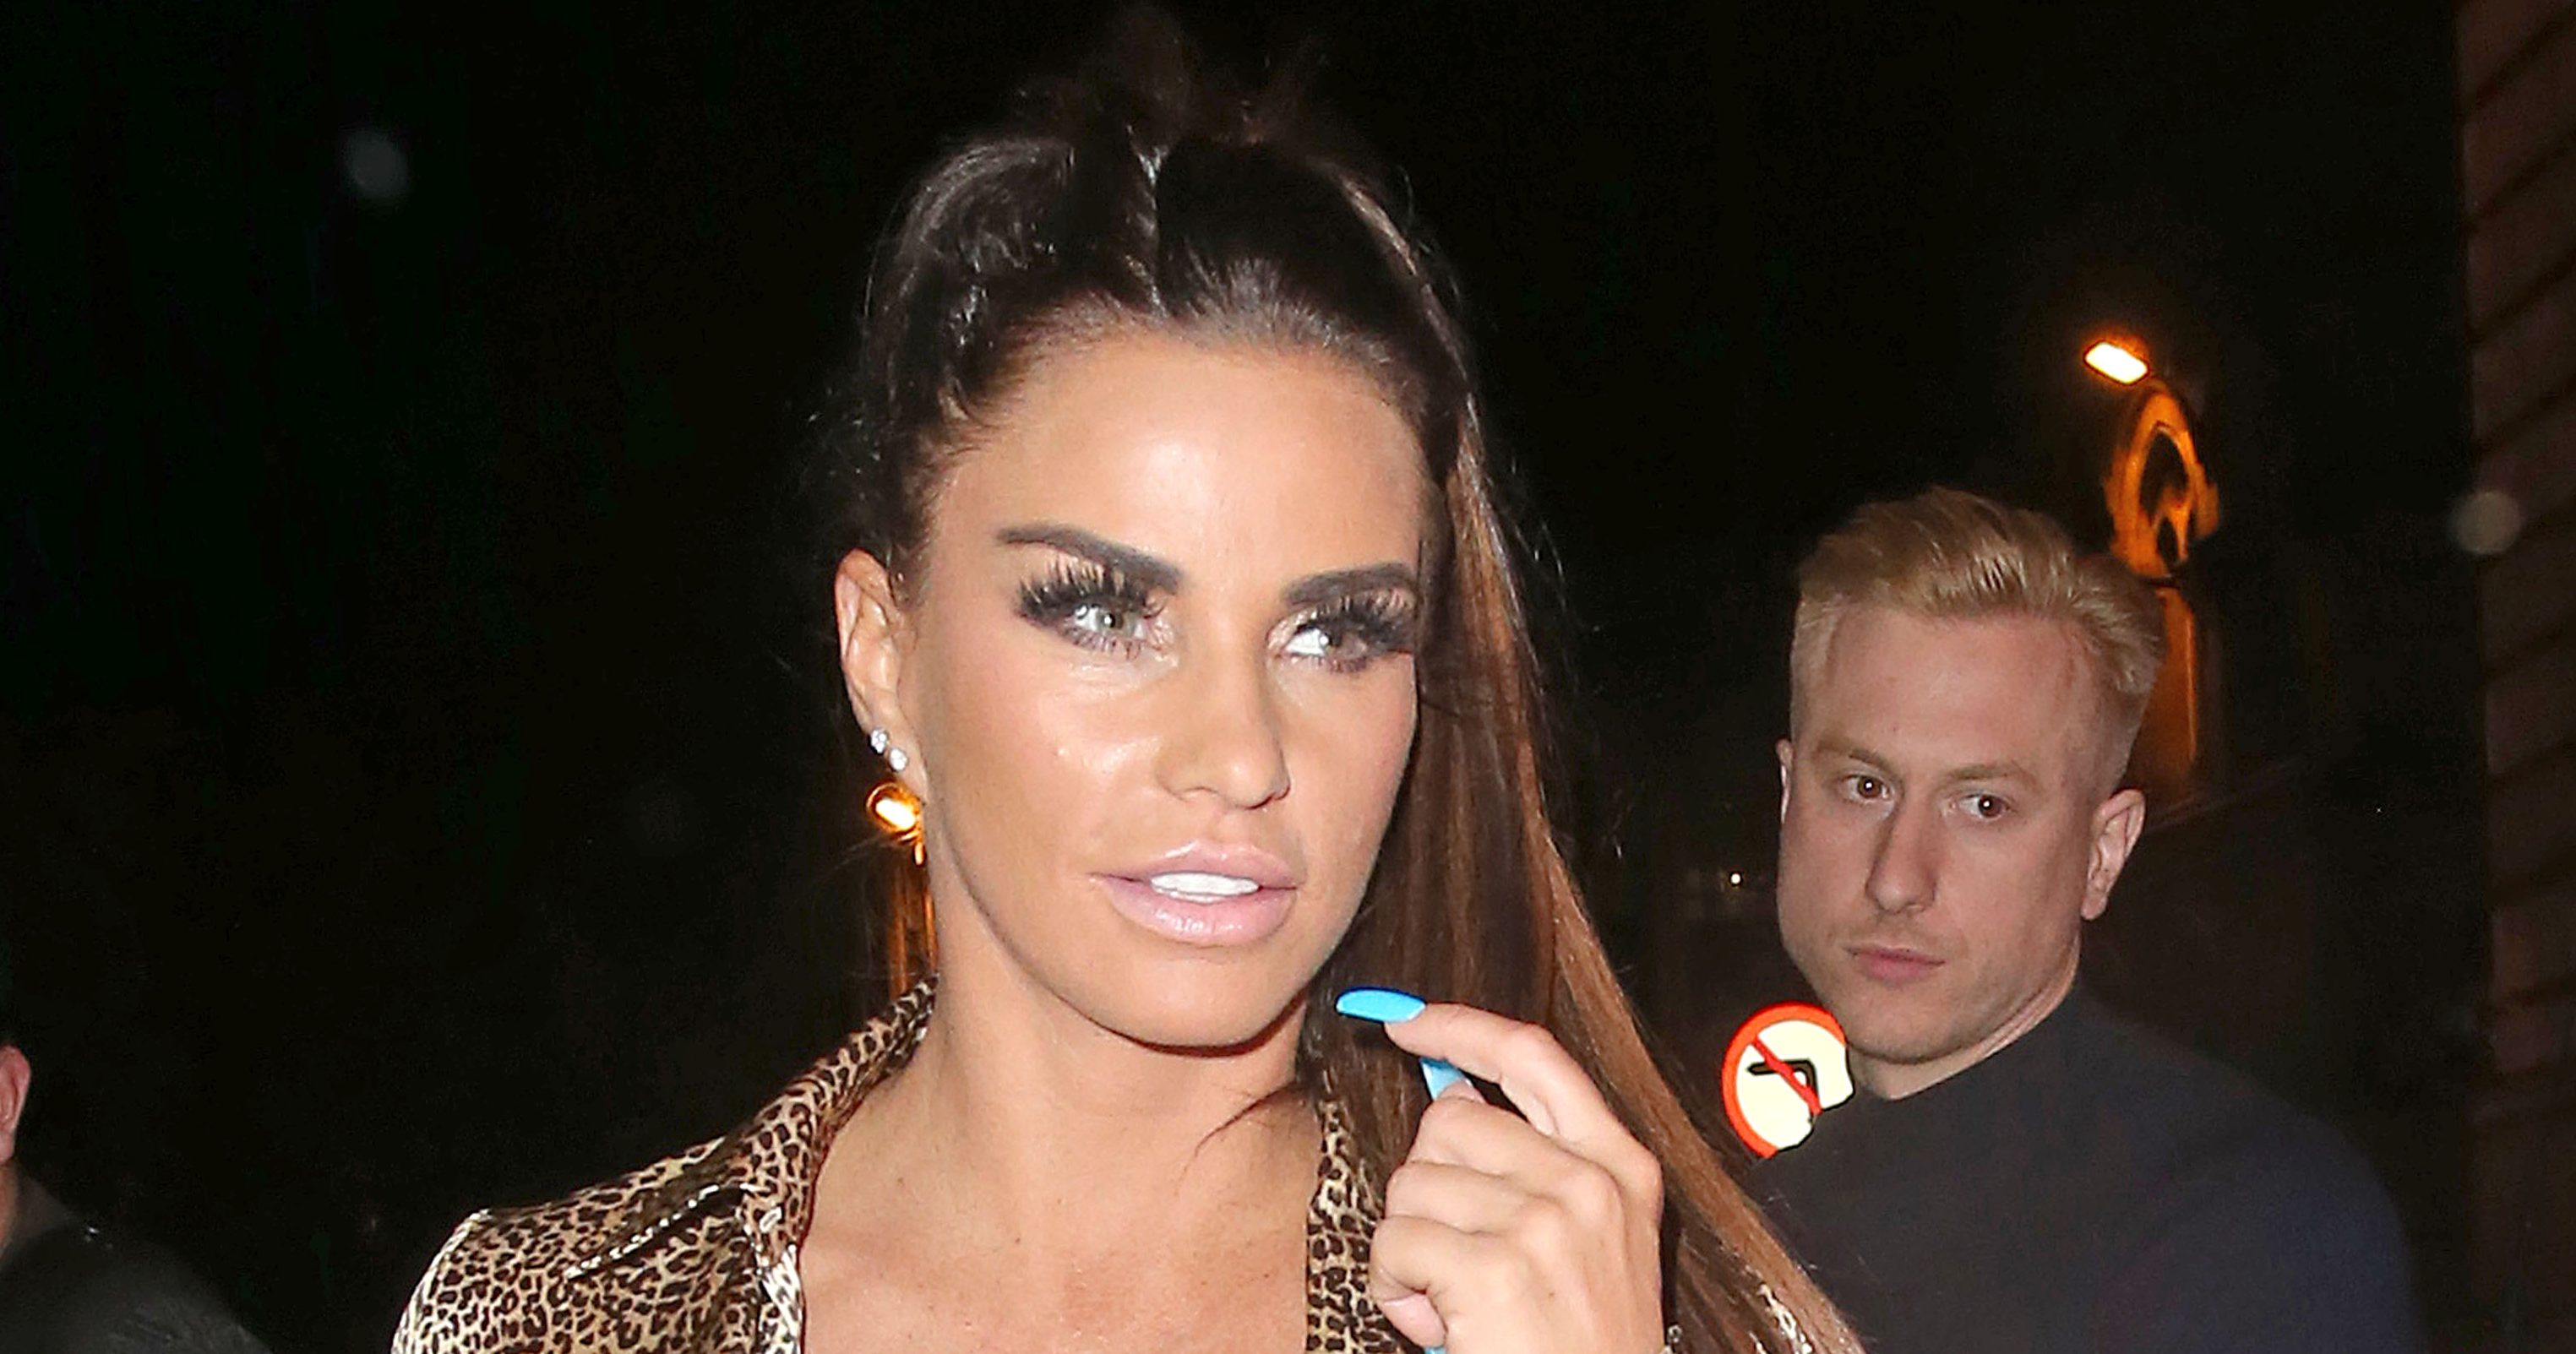 Katie Price may set up 'soft porn app' to get 'revenge' on pal Danielle Lloyd